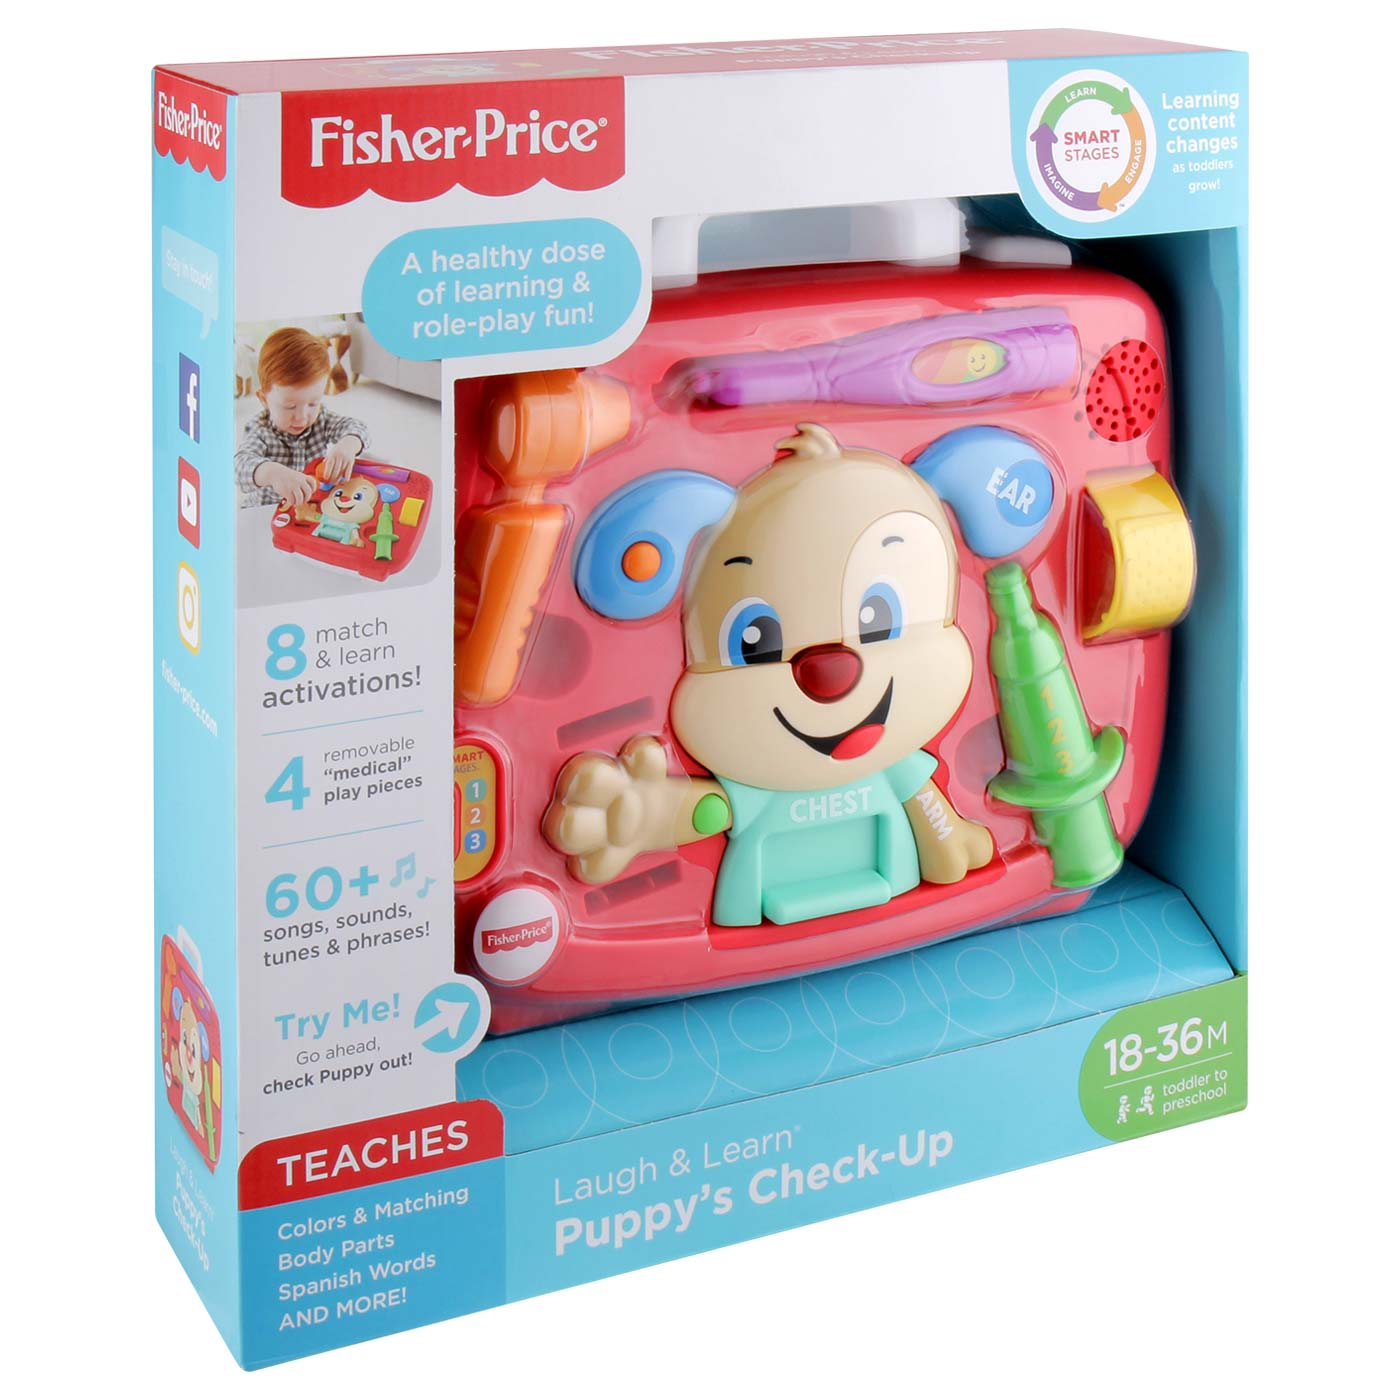 Fisher Price FF  Smart Stages Puppy's Check Up Kit 2